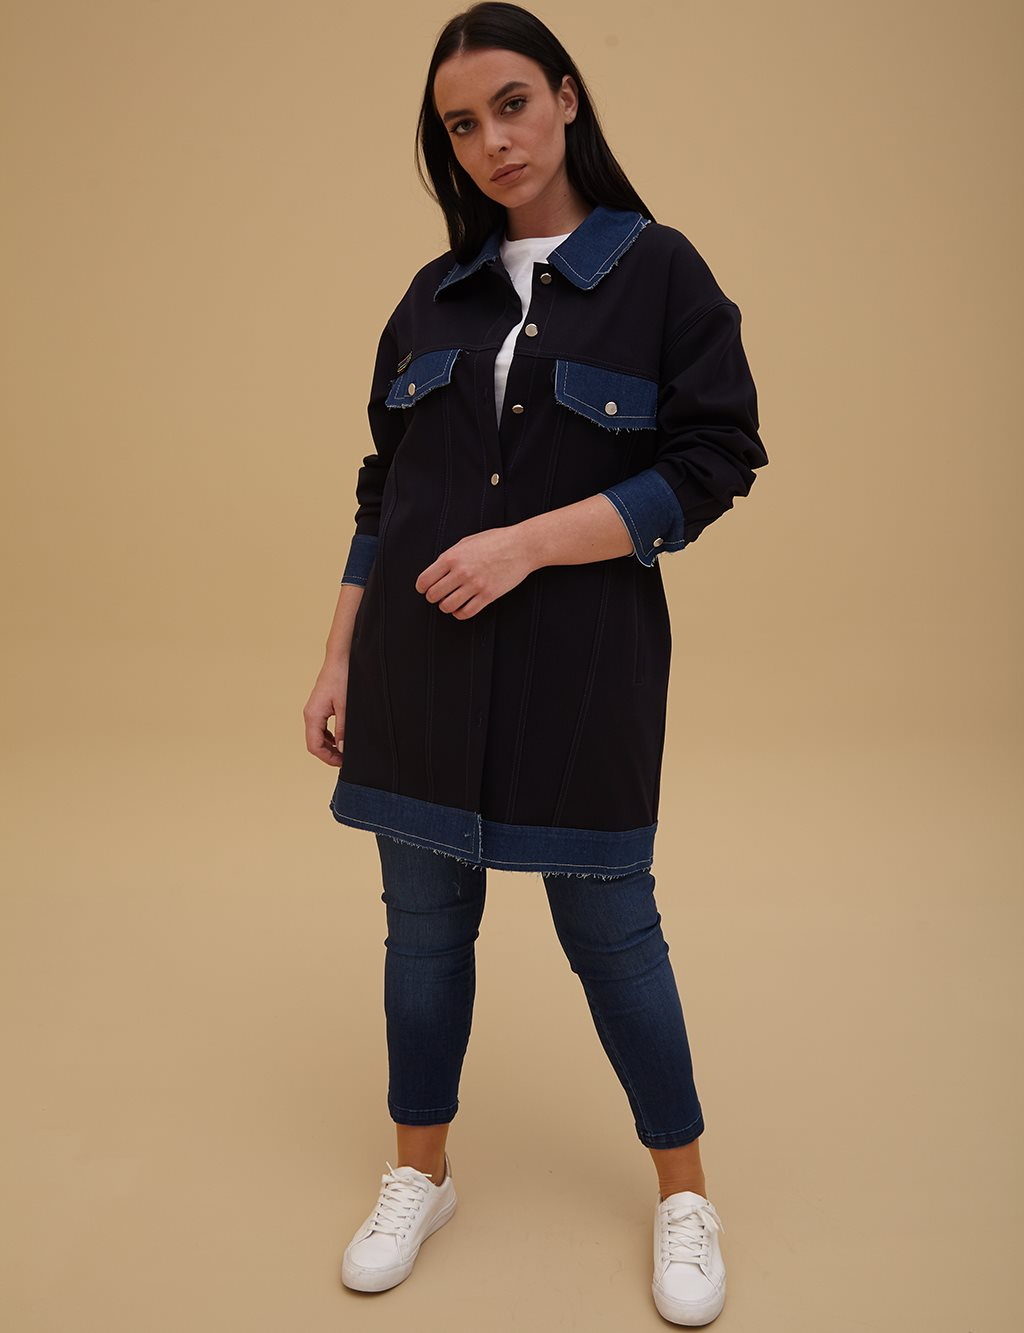 Denim Detailed Jacket A9 13078 Navy